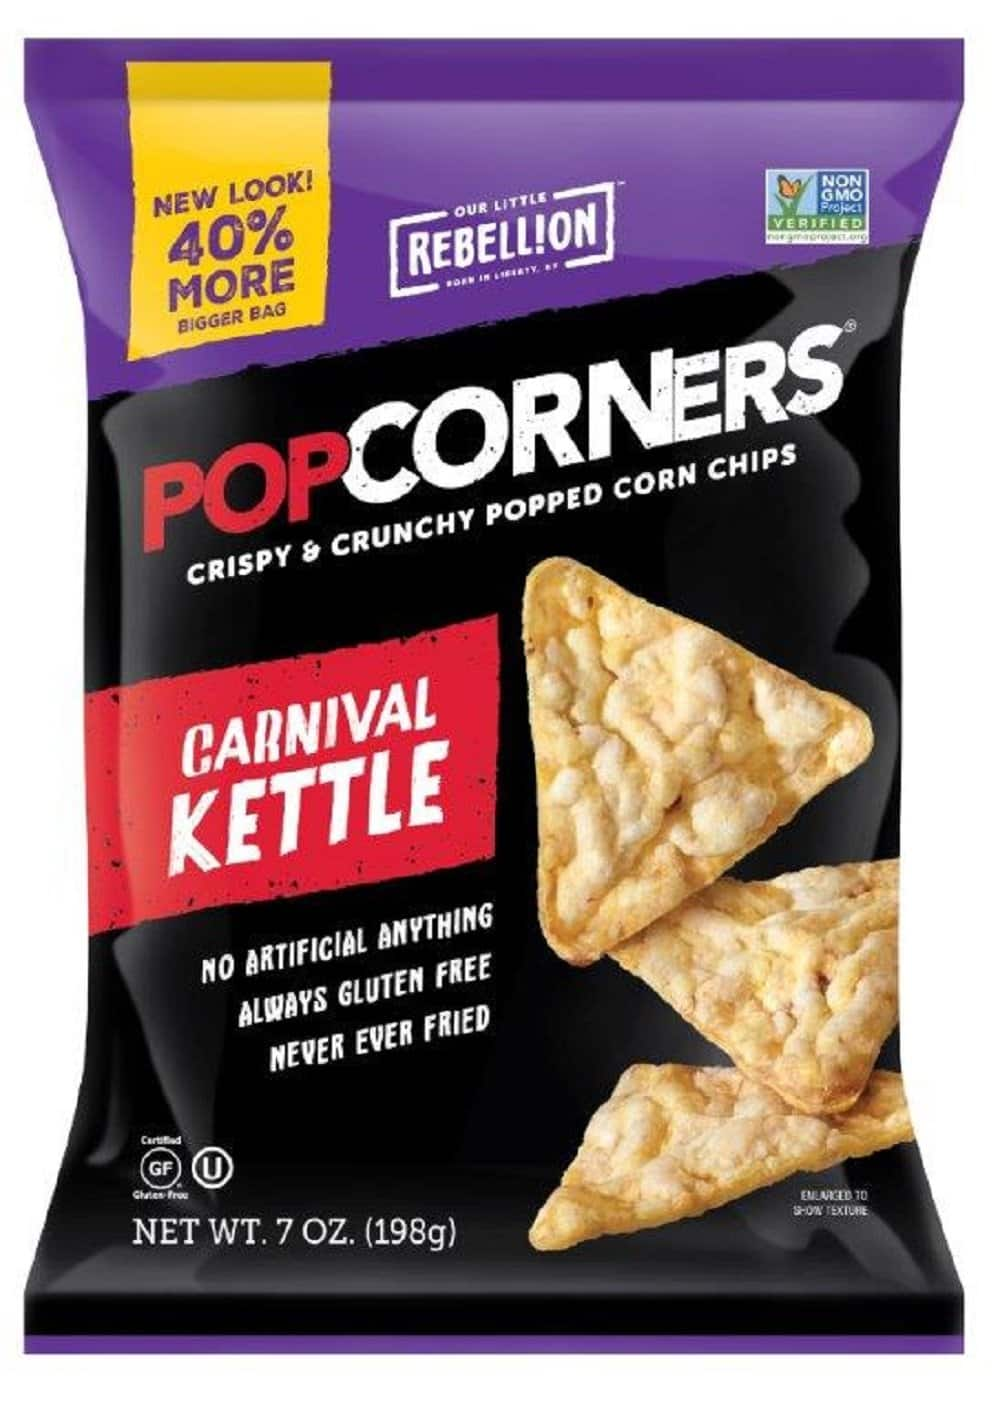 7oz PopCorners Popped Corn Chips (Carnival Kettle or Cinema Style Butter) $2.04 + Free Prime Shipping